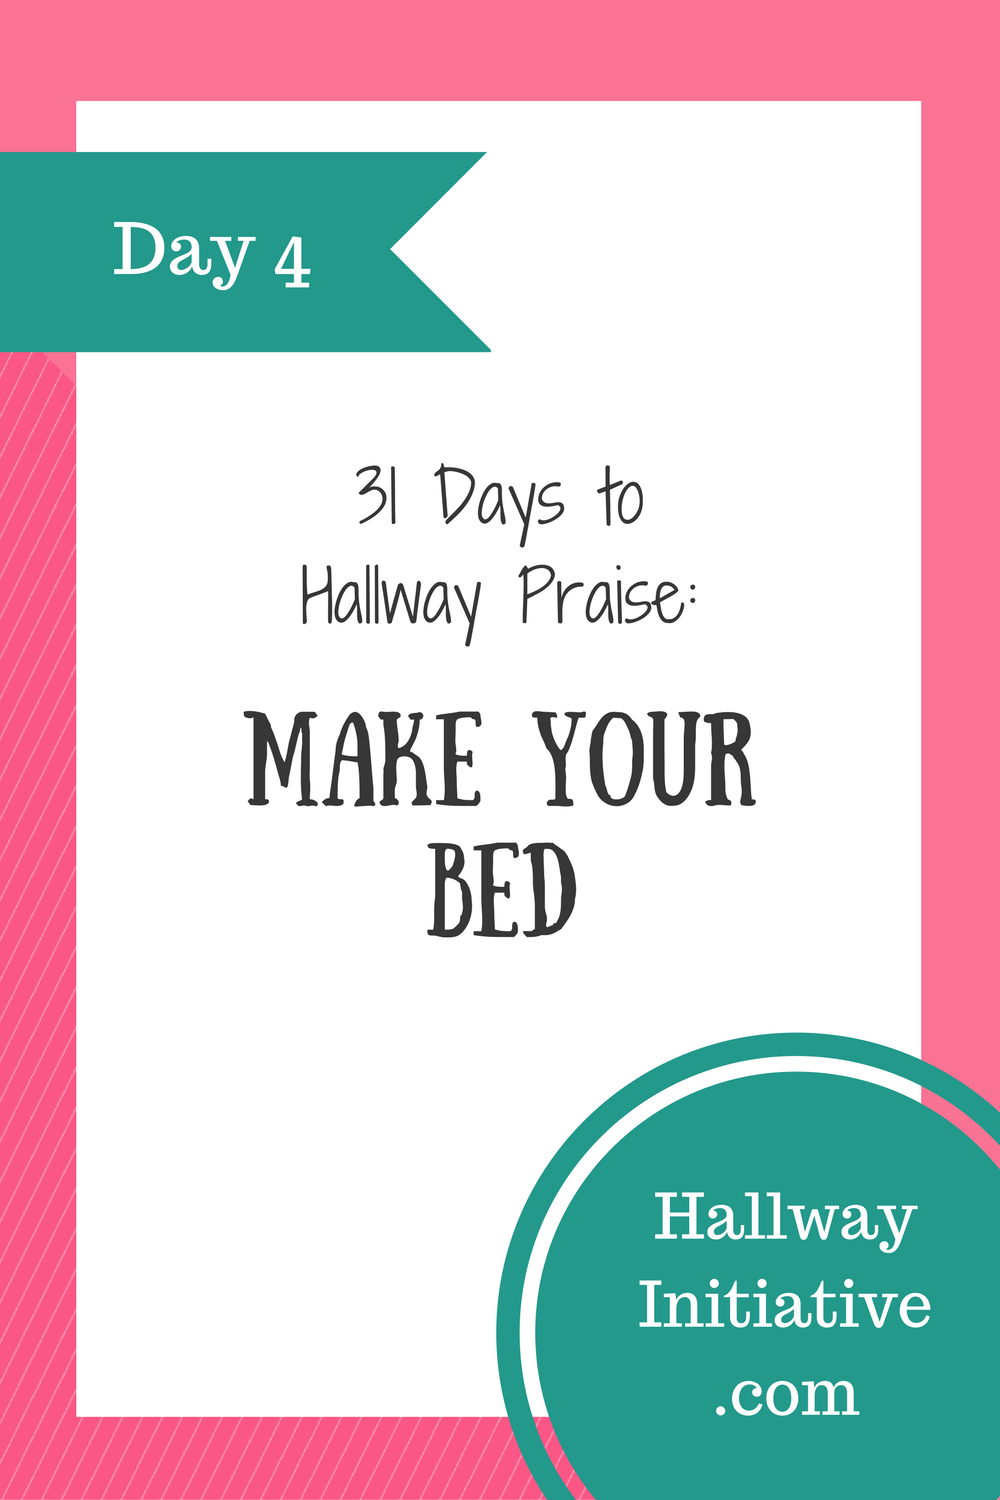 Day 4: make your bed